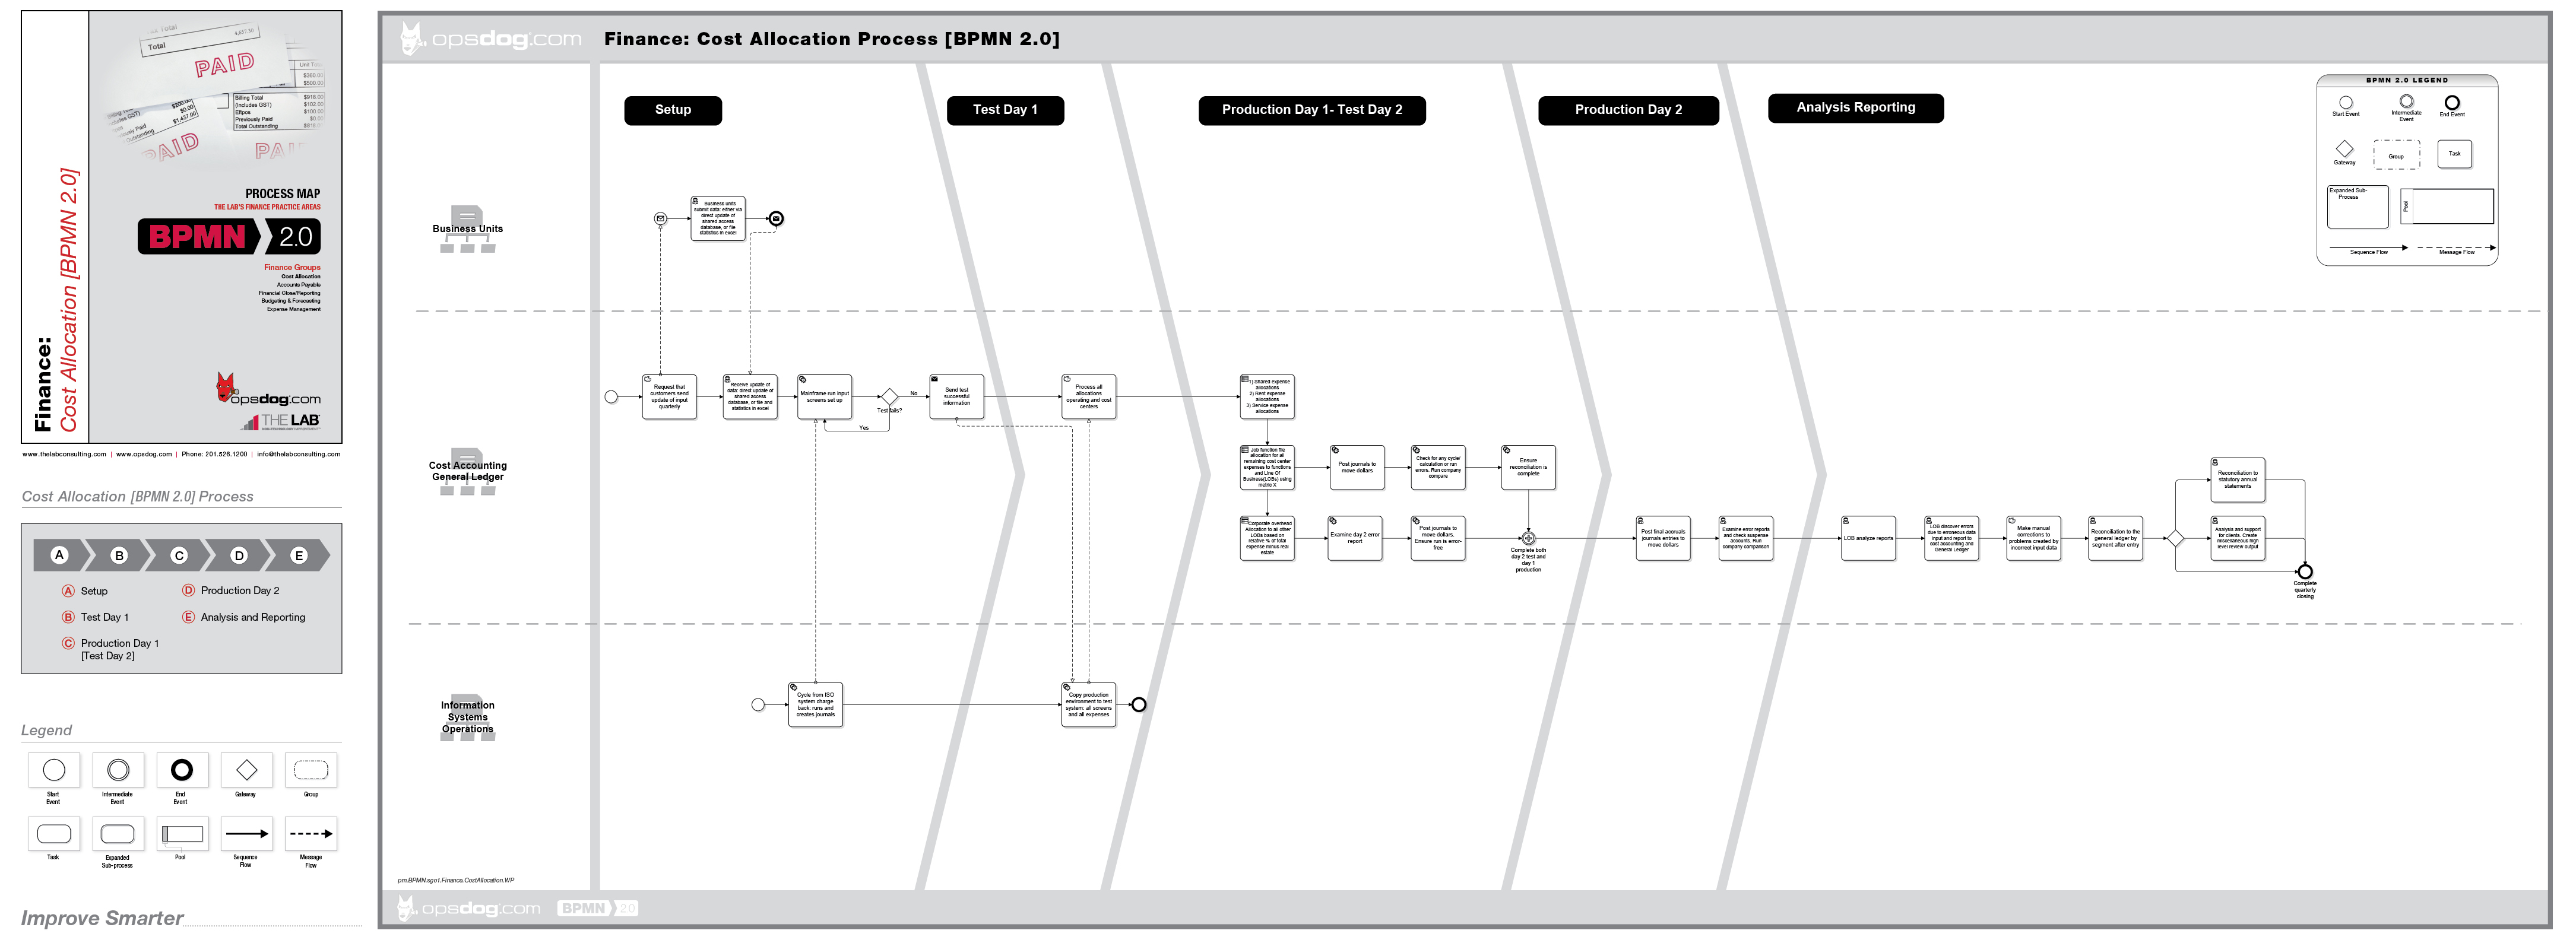 Opsdog provides business process mapping templates to corporate a sample cost allocation business process map template from opsdog flashek Images